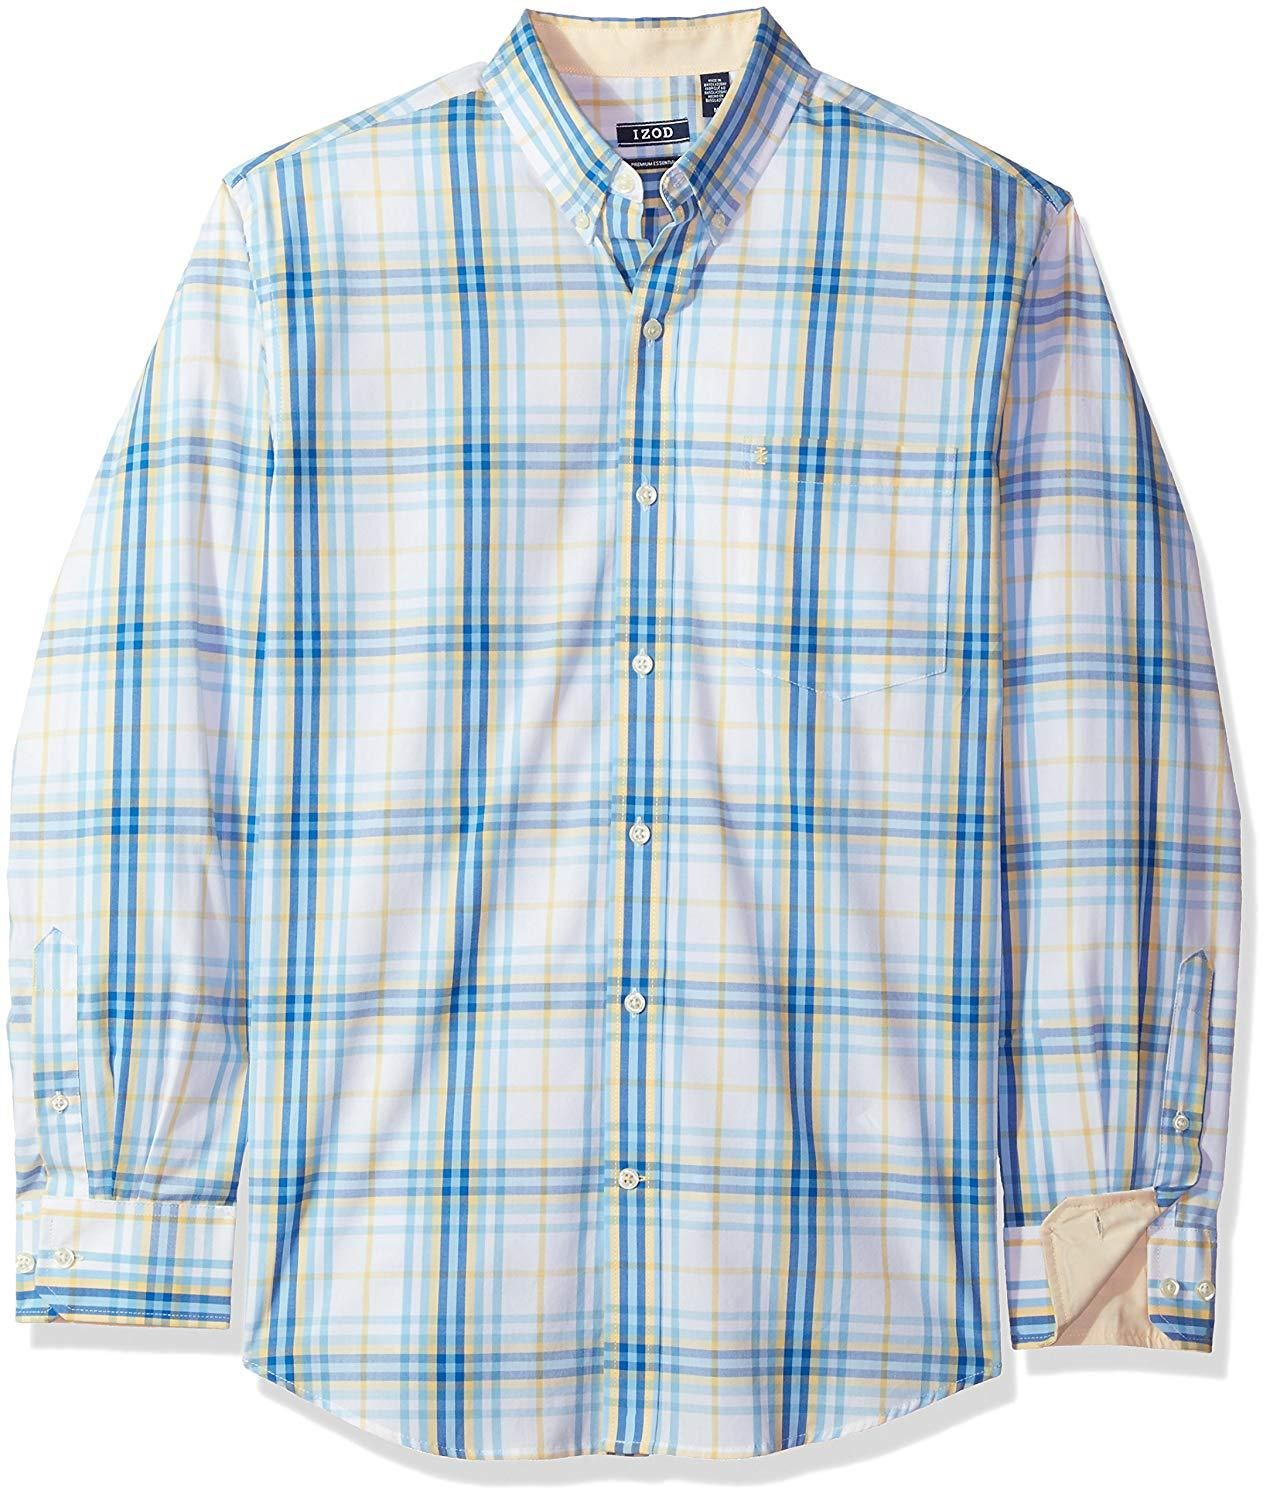 IZOD Mens Button Down Long Sleeve Stretch Performance Plaid Shirt